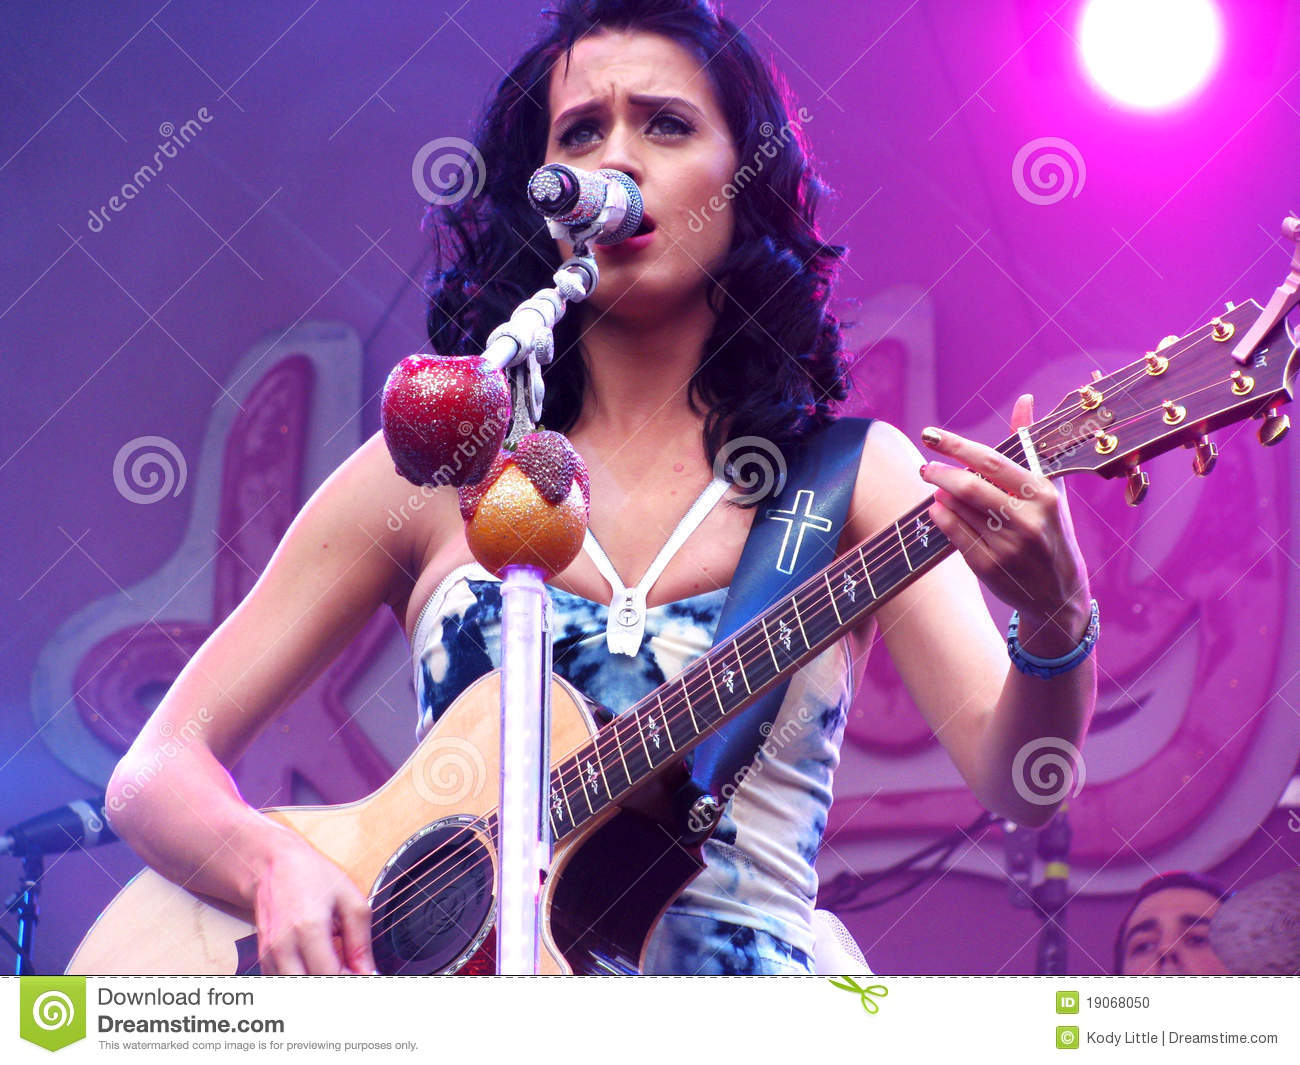 Power Girl Wallpaper Hd Katy Perry Playing The Guitar Editorial Image Image